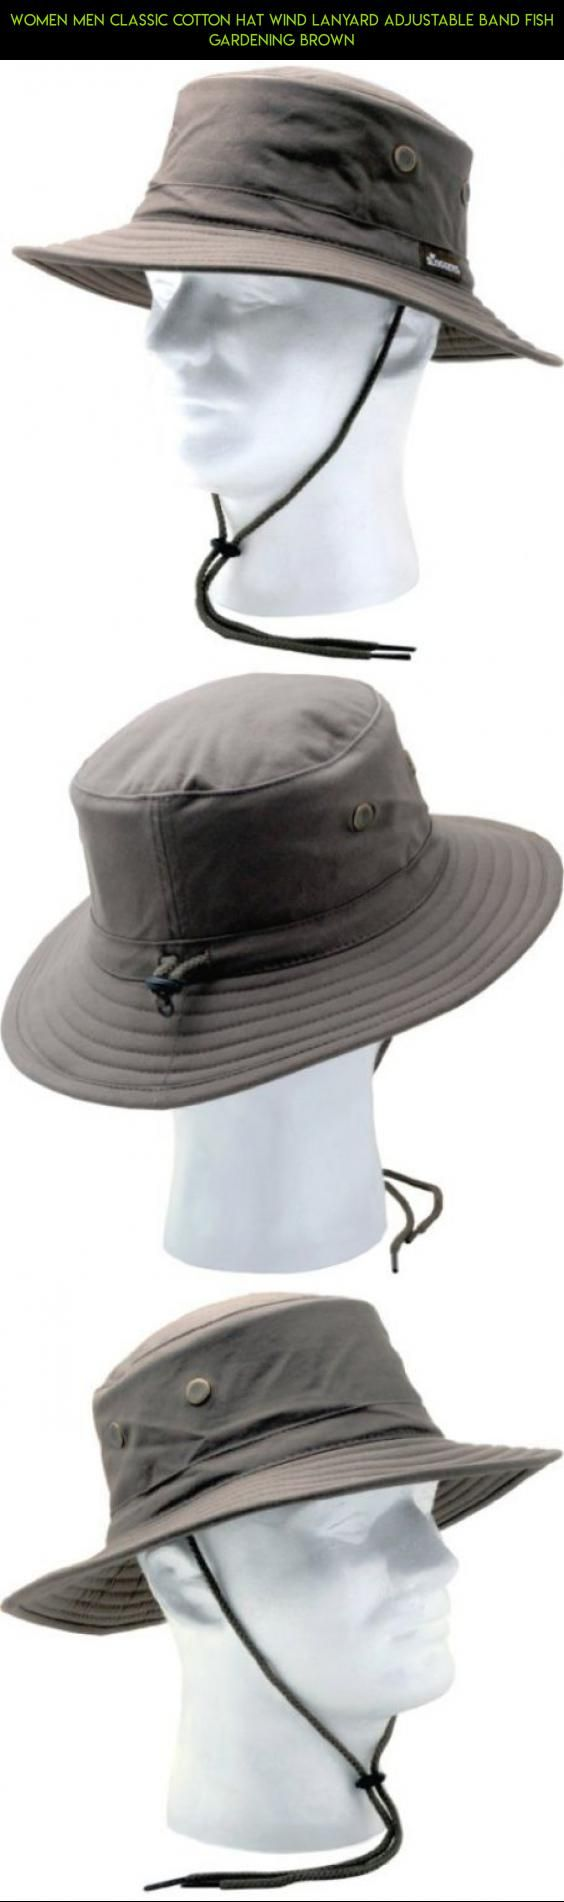 Women Men Classic Cotton Hat Wind Lanyard Adjustable Band Fish Gardening Brown #kit #camera #shopping #hats #for #fpv #parts #plans #gadgets #tech #men #products #drone #racing #technology #gardening